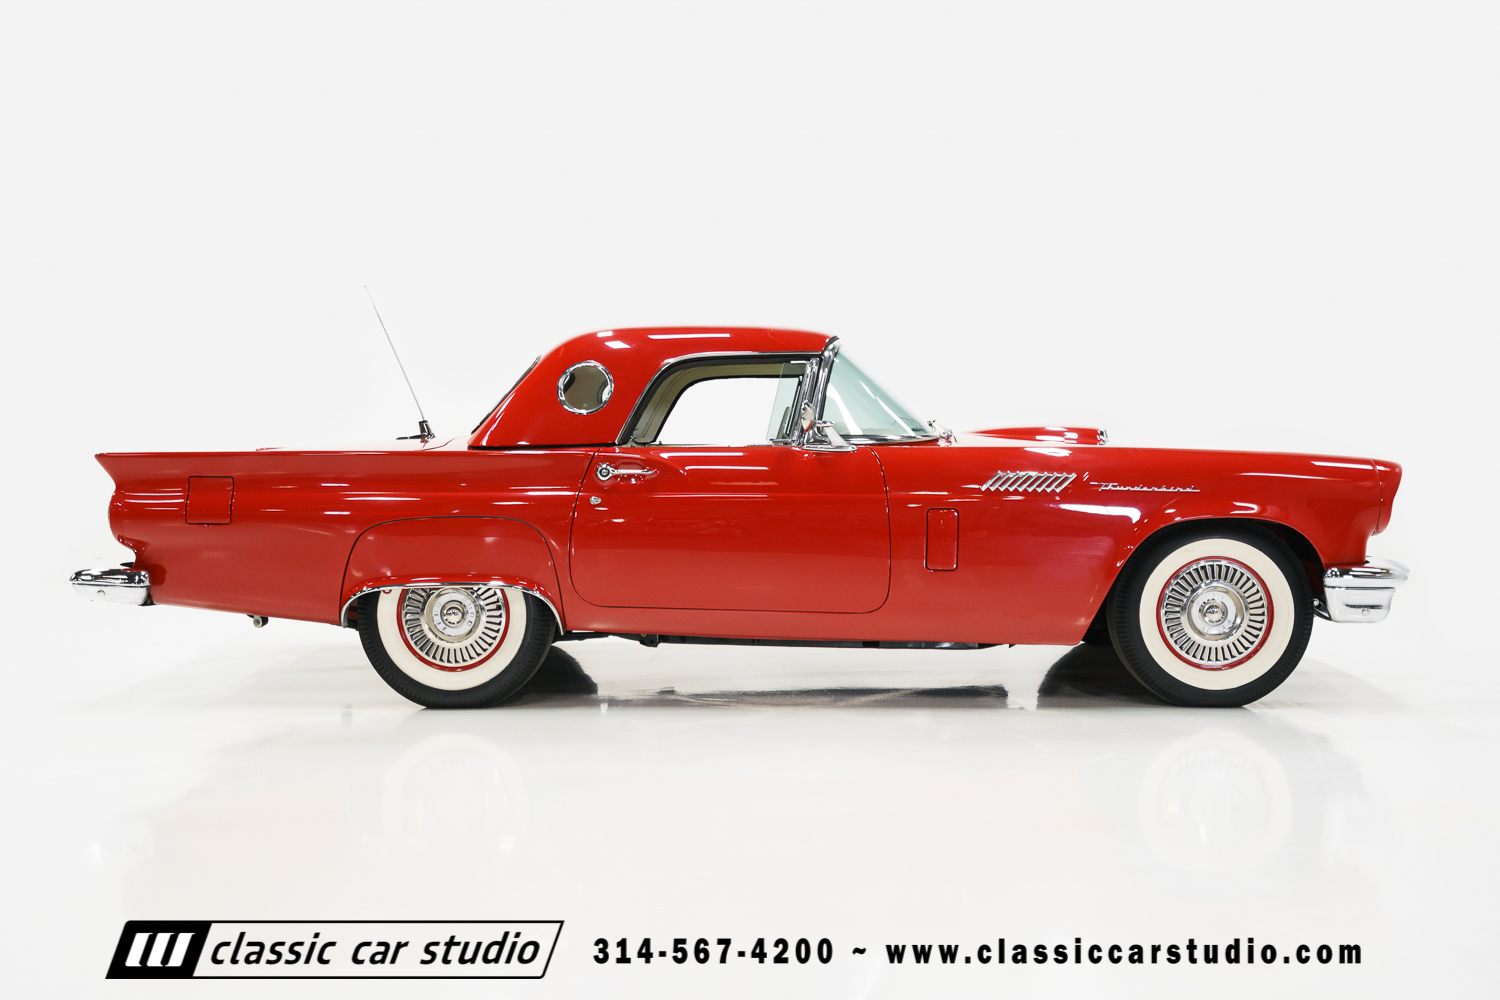 1957 Ford Thunderbird Classic Car Studio